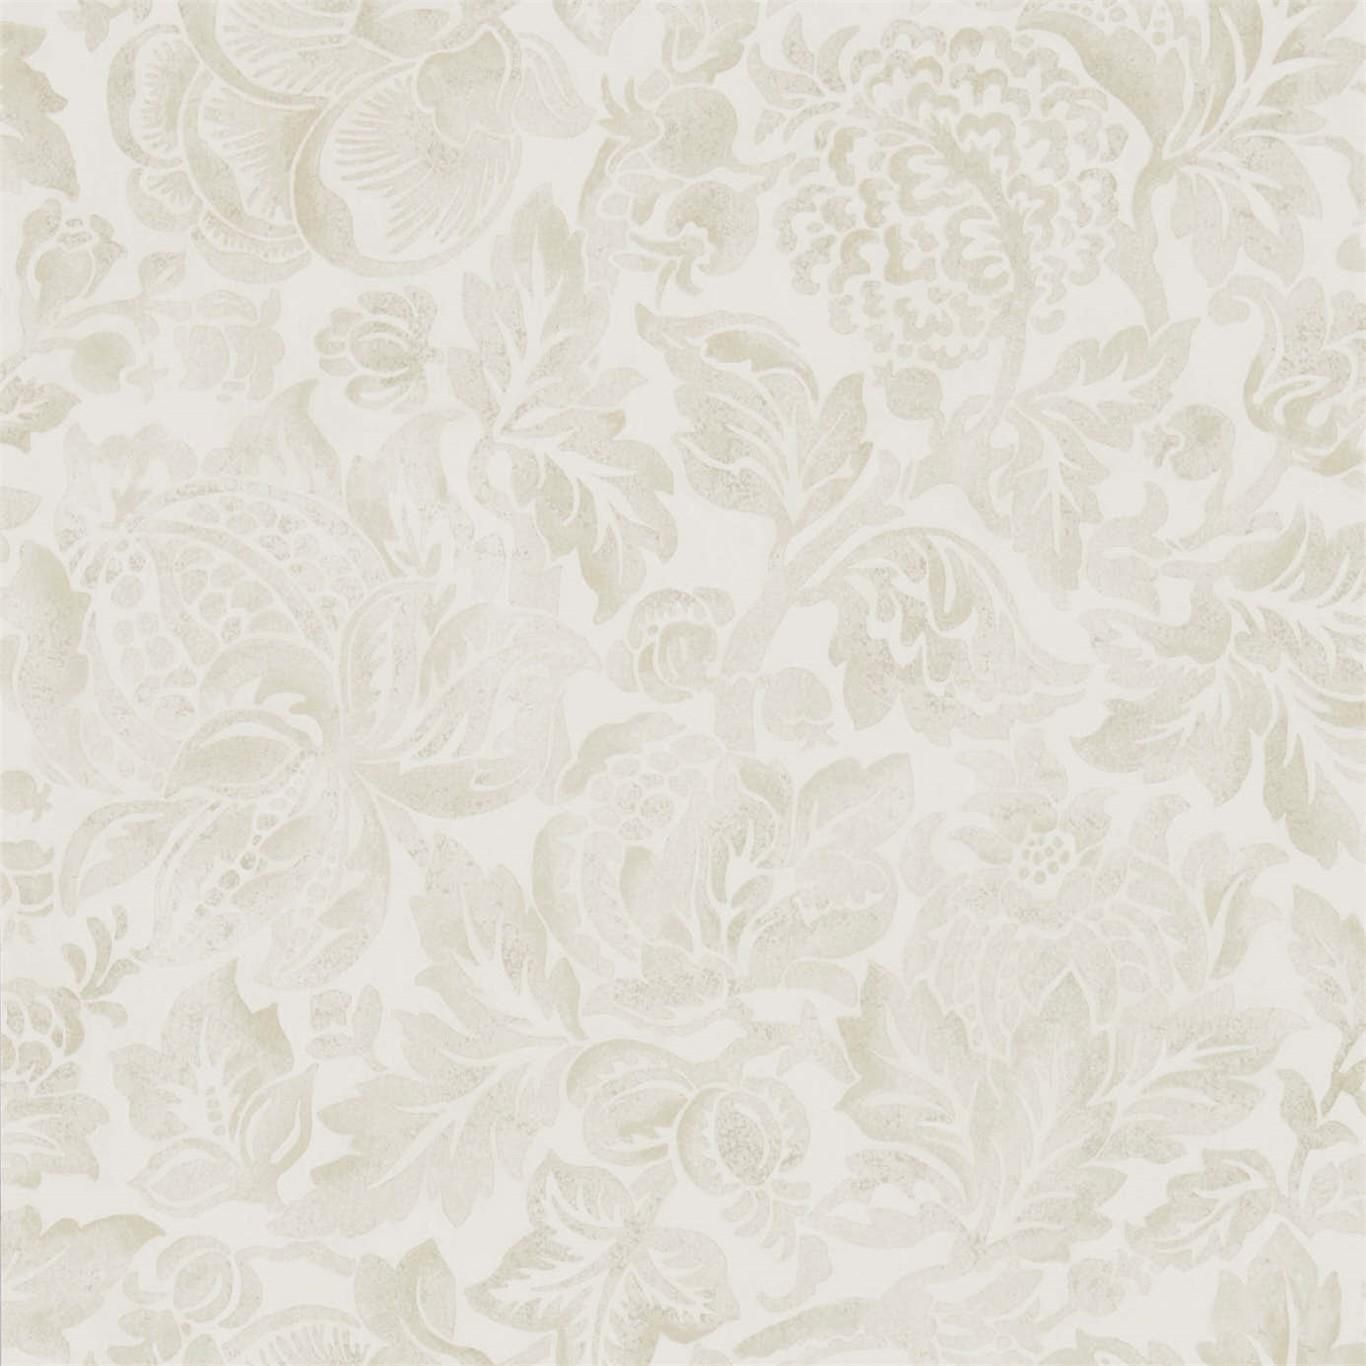 Buy Sanderson 216415 Thackeray Wallpaper Chiswick Grove